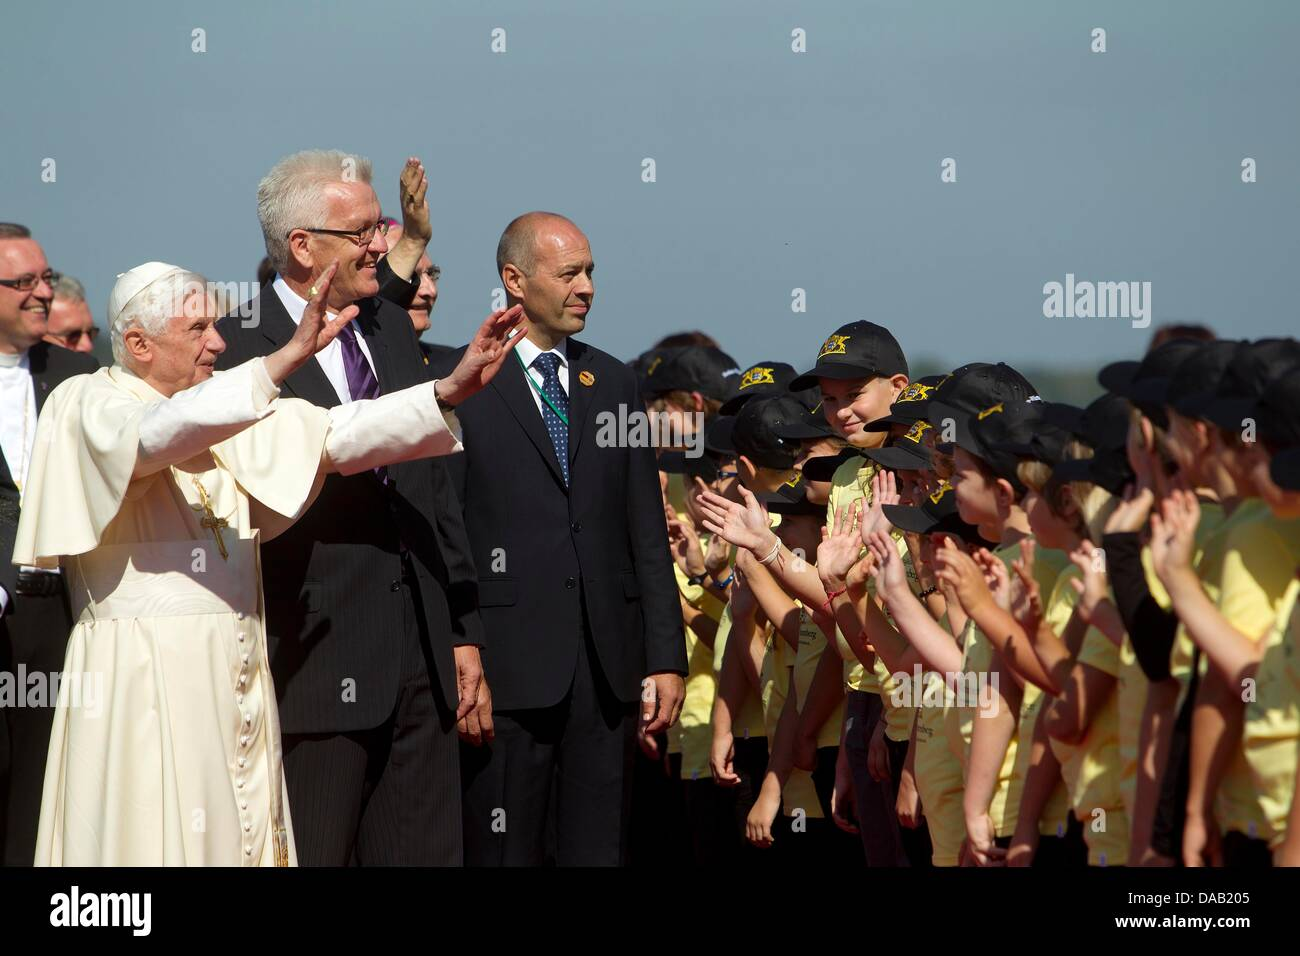 Pope Benedict Xvi L And The Prime Minister Of The German Federal